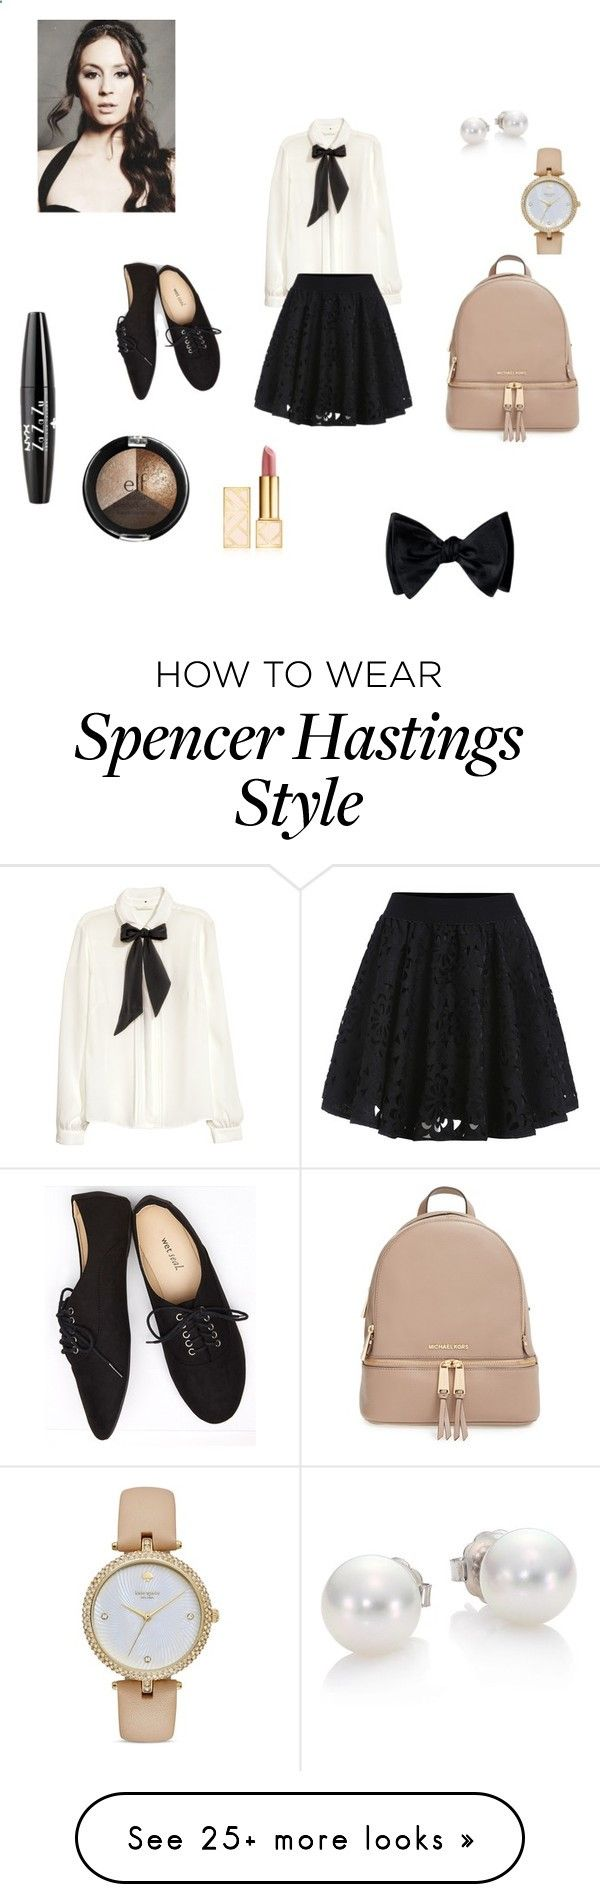 PLL School Looks Spencer Hastings #3 by shannonyehl on Polyvore featuring H&M, Wet Seal, Mikimoto, Kate Spade, NYX, Tory Burch, MICHAEL Michael Kors and pll